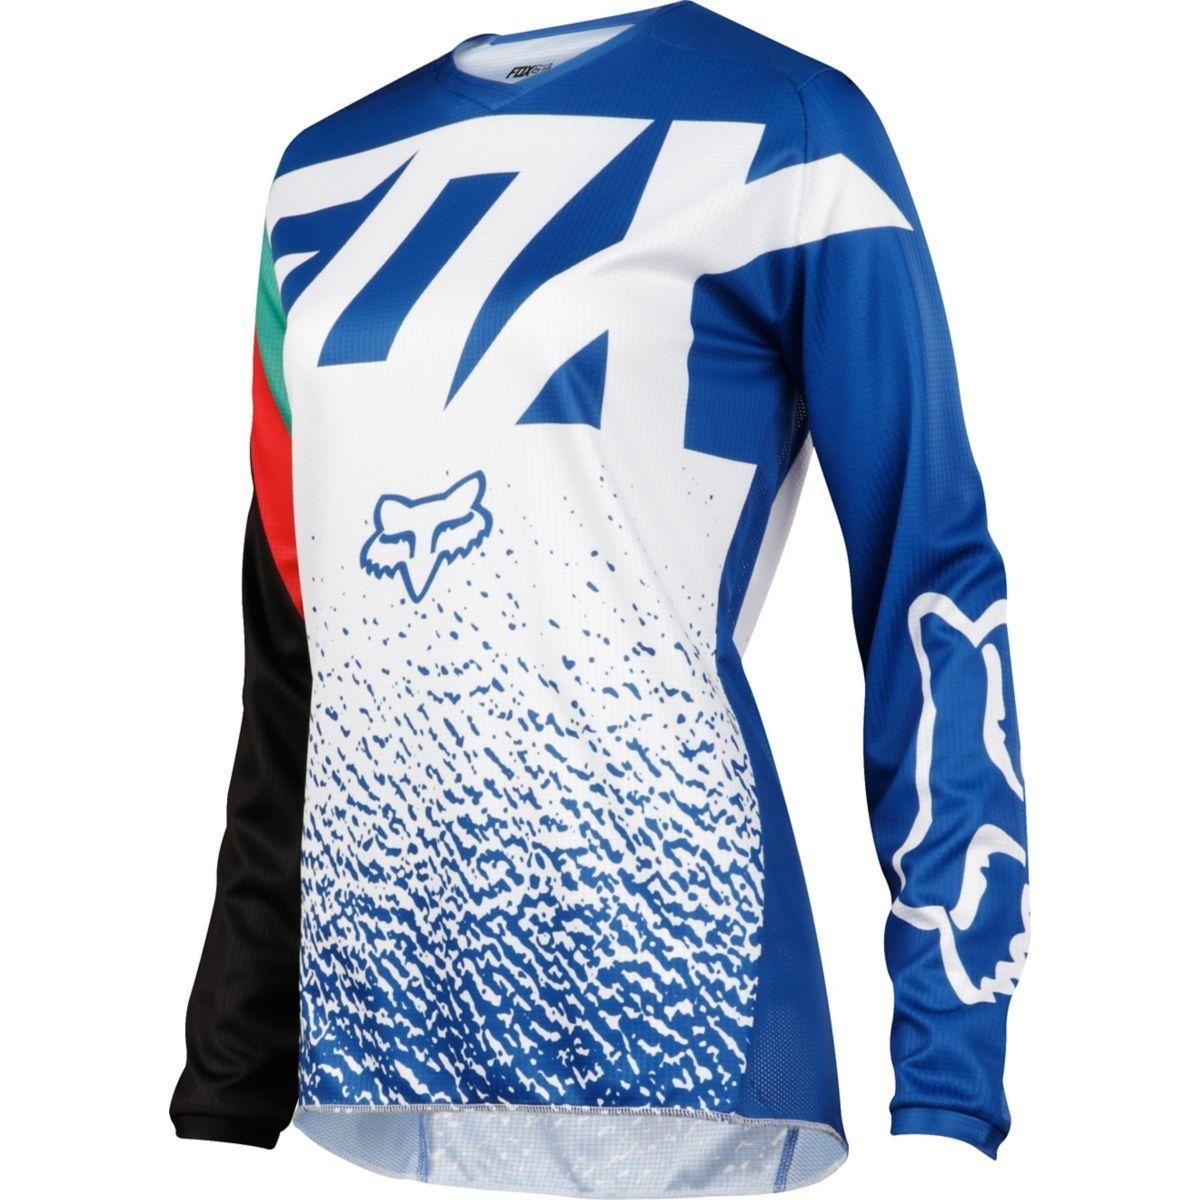 2018 Womens 180 Jersey-Blue-L, The Fox Racing jersey is a perfect fusion of function and style By Fox Racing from USA